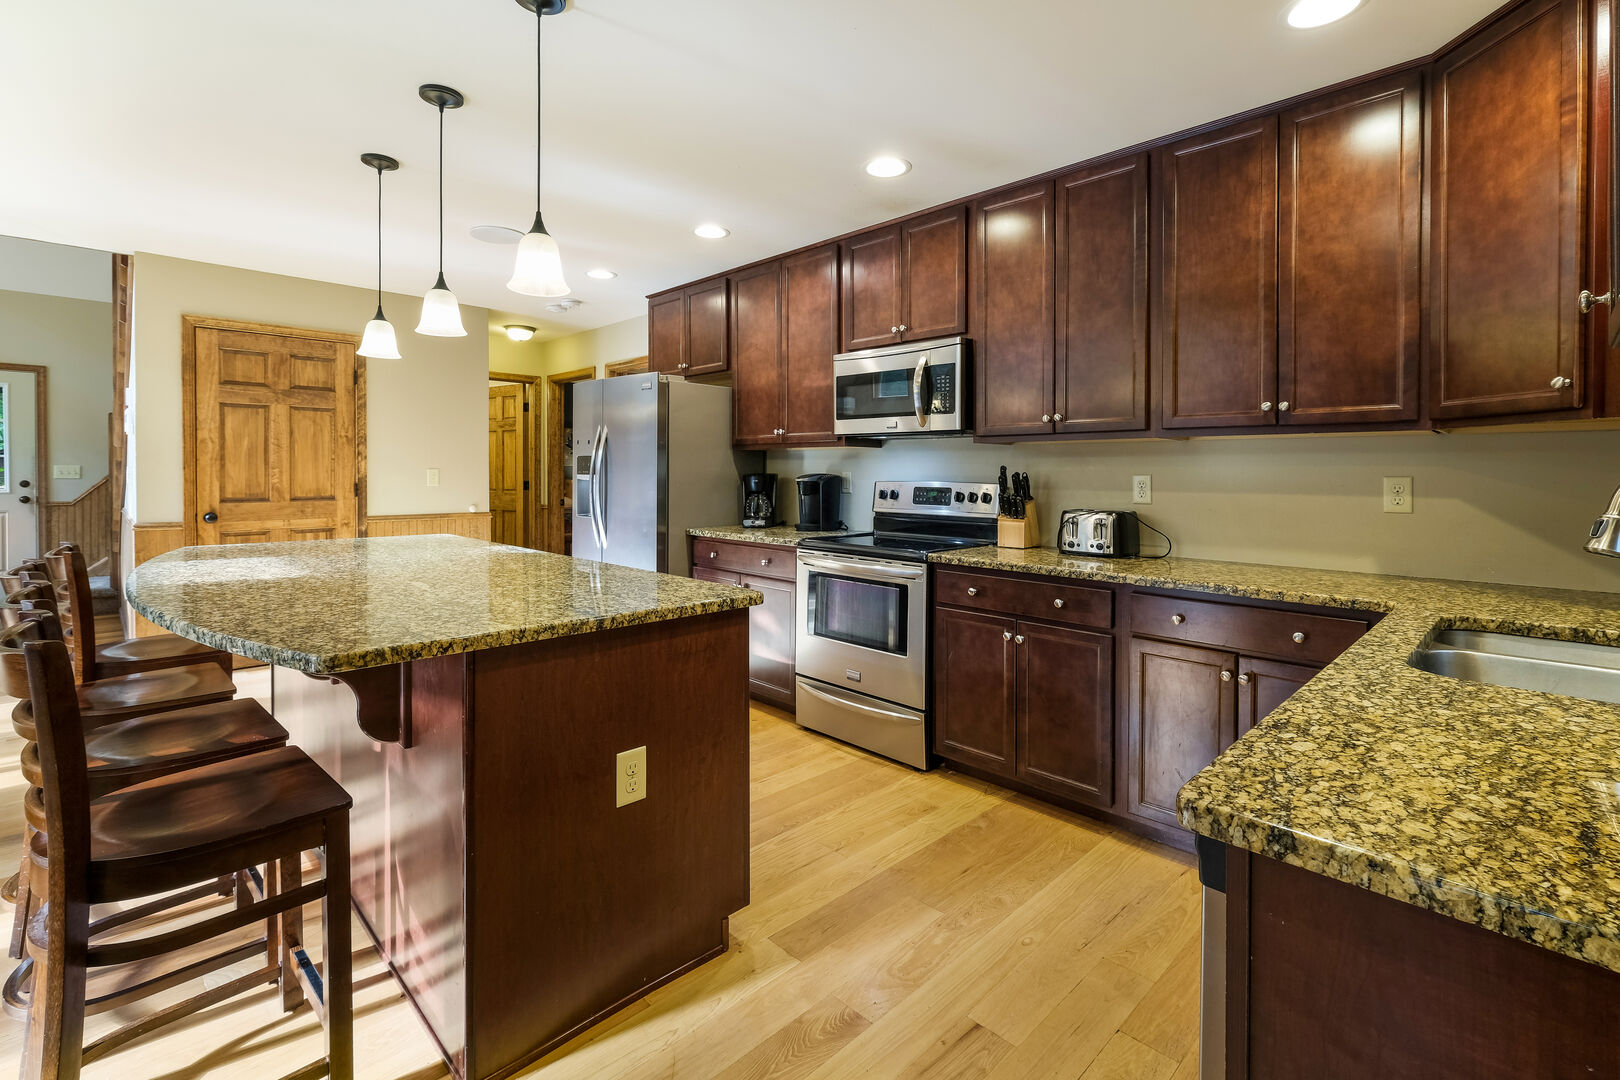 Picture of the kitchen, with center island with chairs, microwave, oven, and refrigerator.